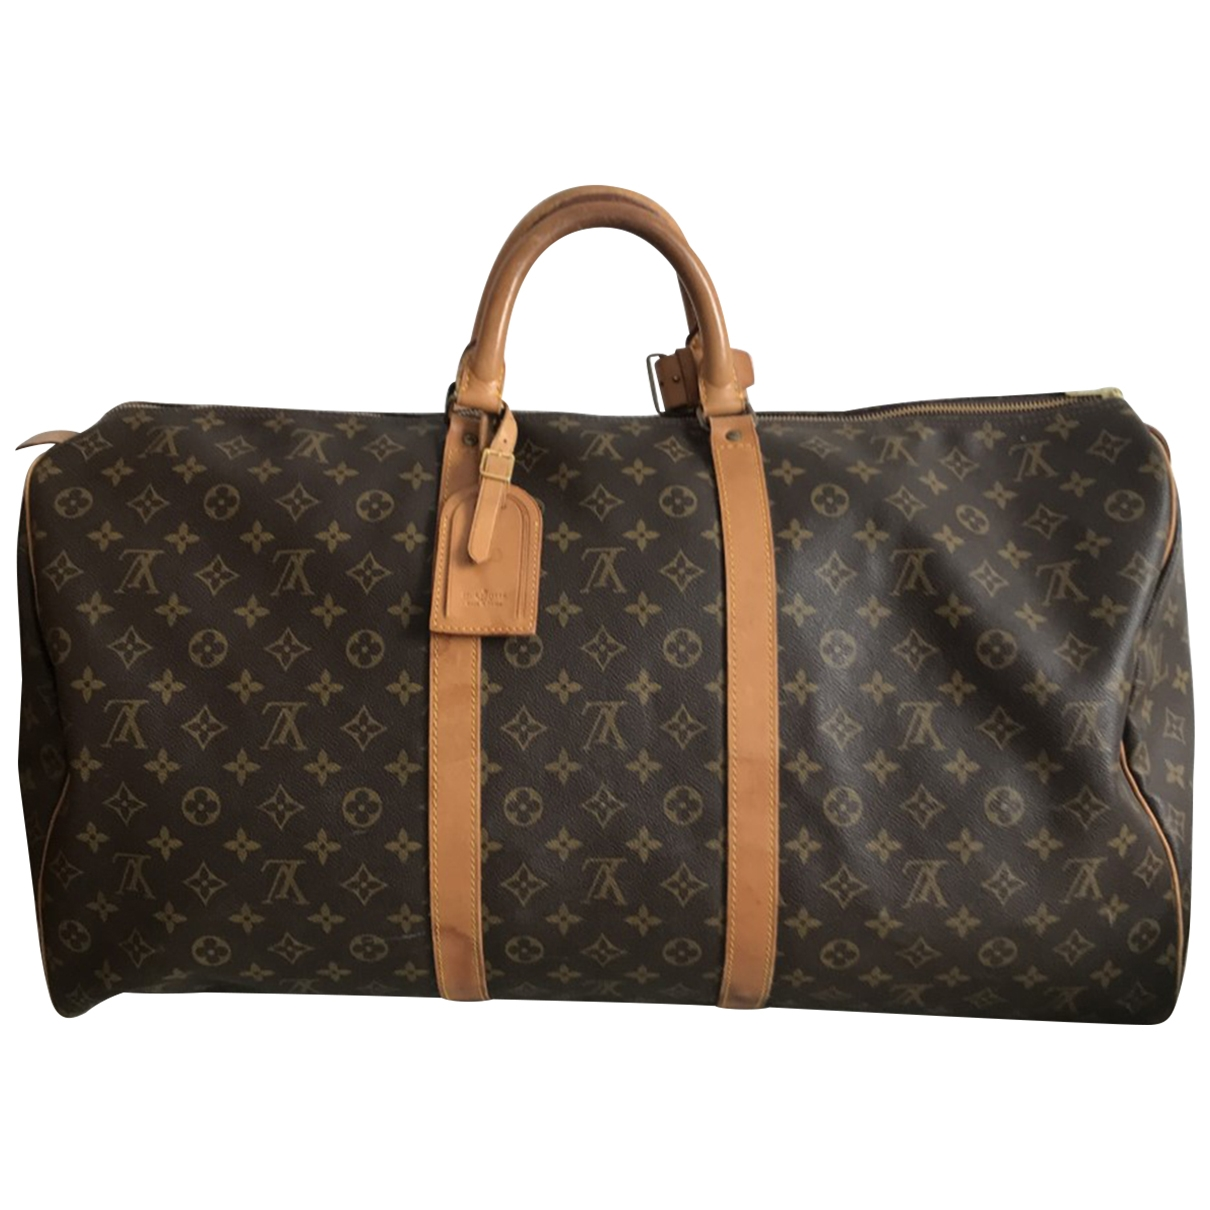 Louis Vuitton Keepall Brown Cloth Travel bag for Women \N